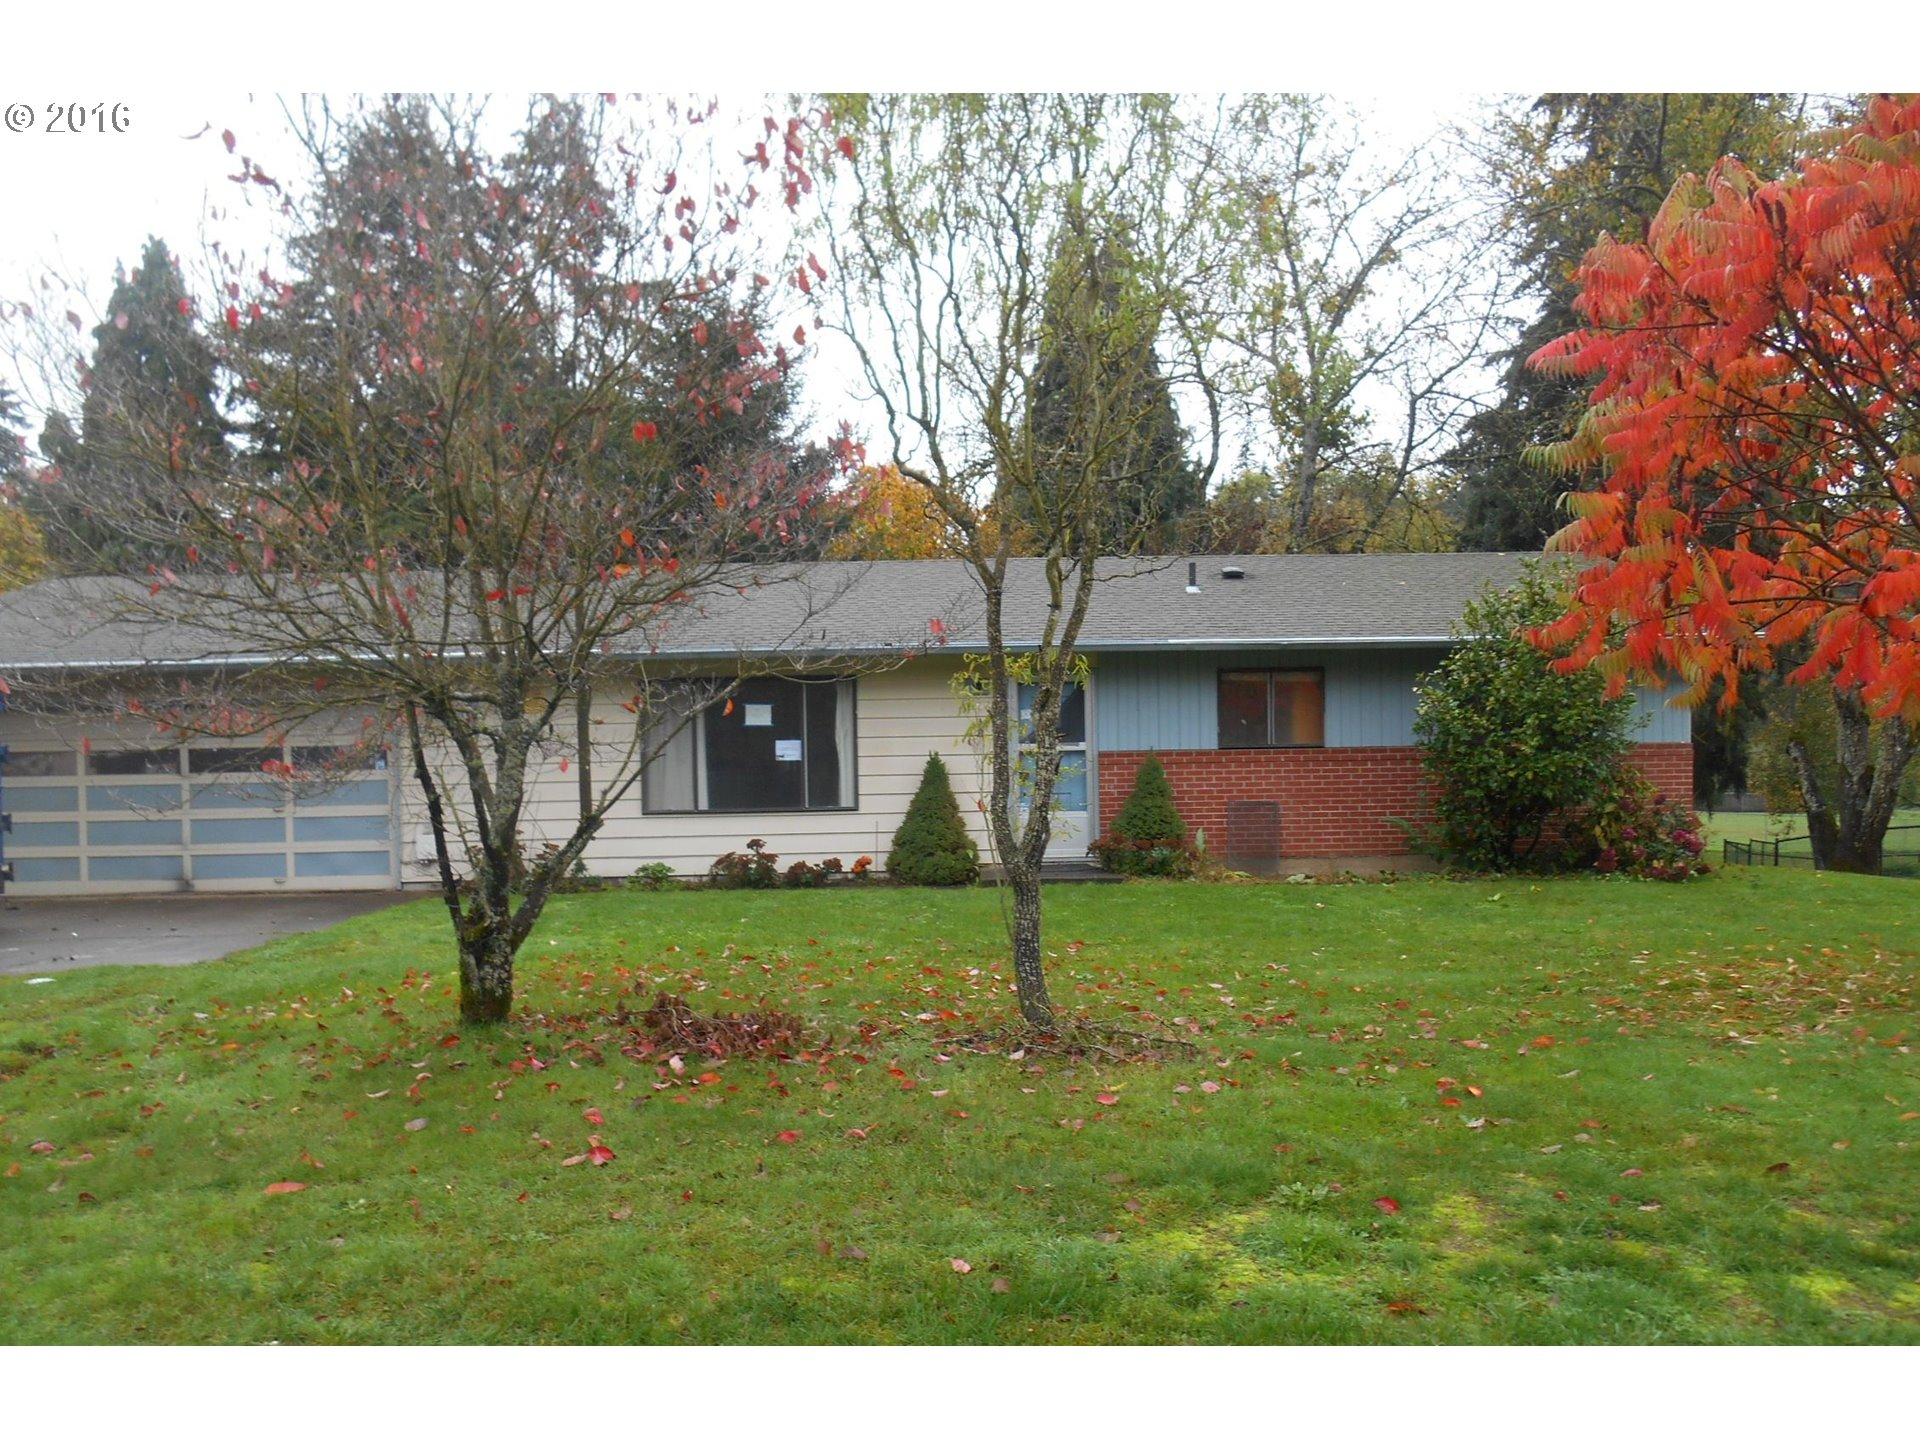 1275 sq. ft 3 bedrooms 1 bathrooms  House , Vancouver, WA